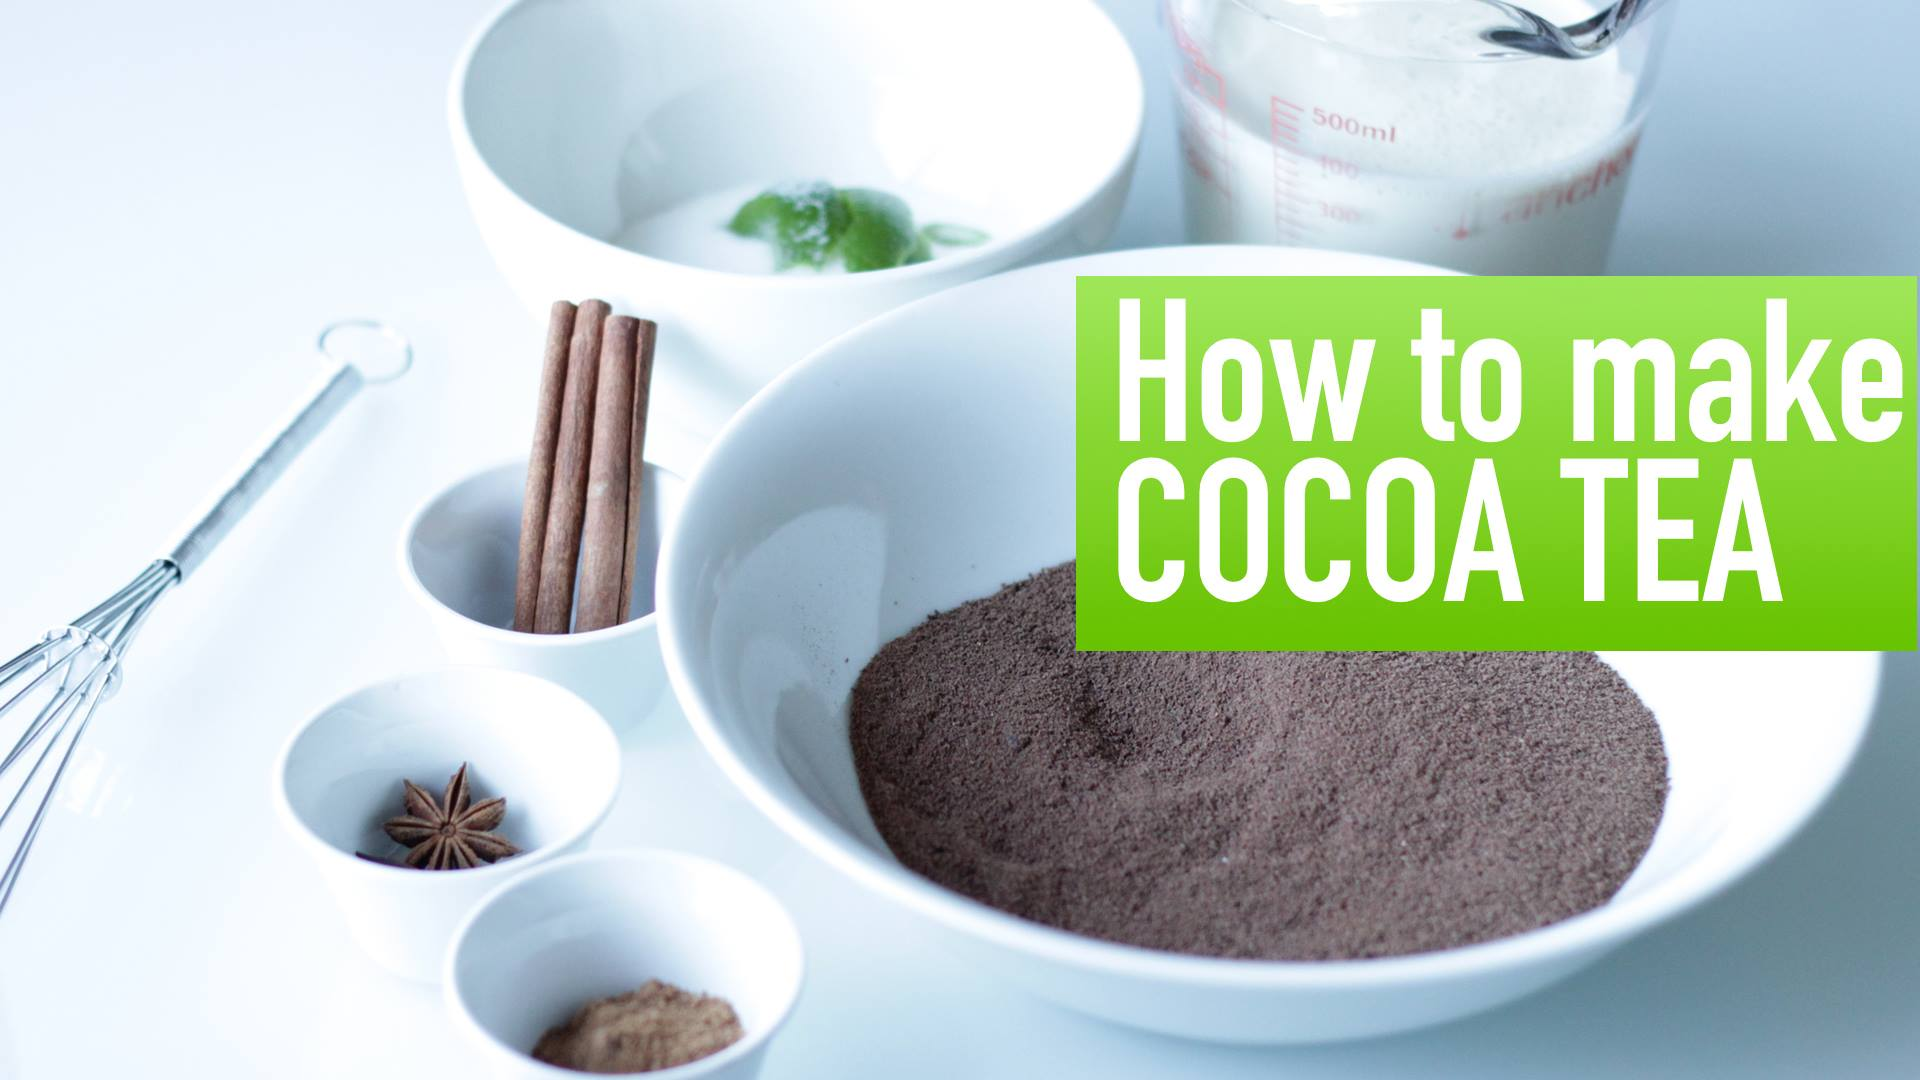 How to make Cocoa Tea | Caribbean Recipes - Caribbean Online Magazine